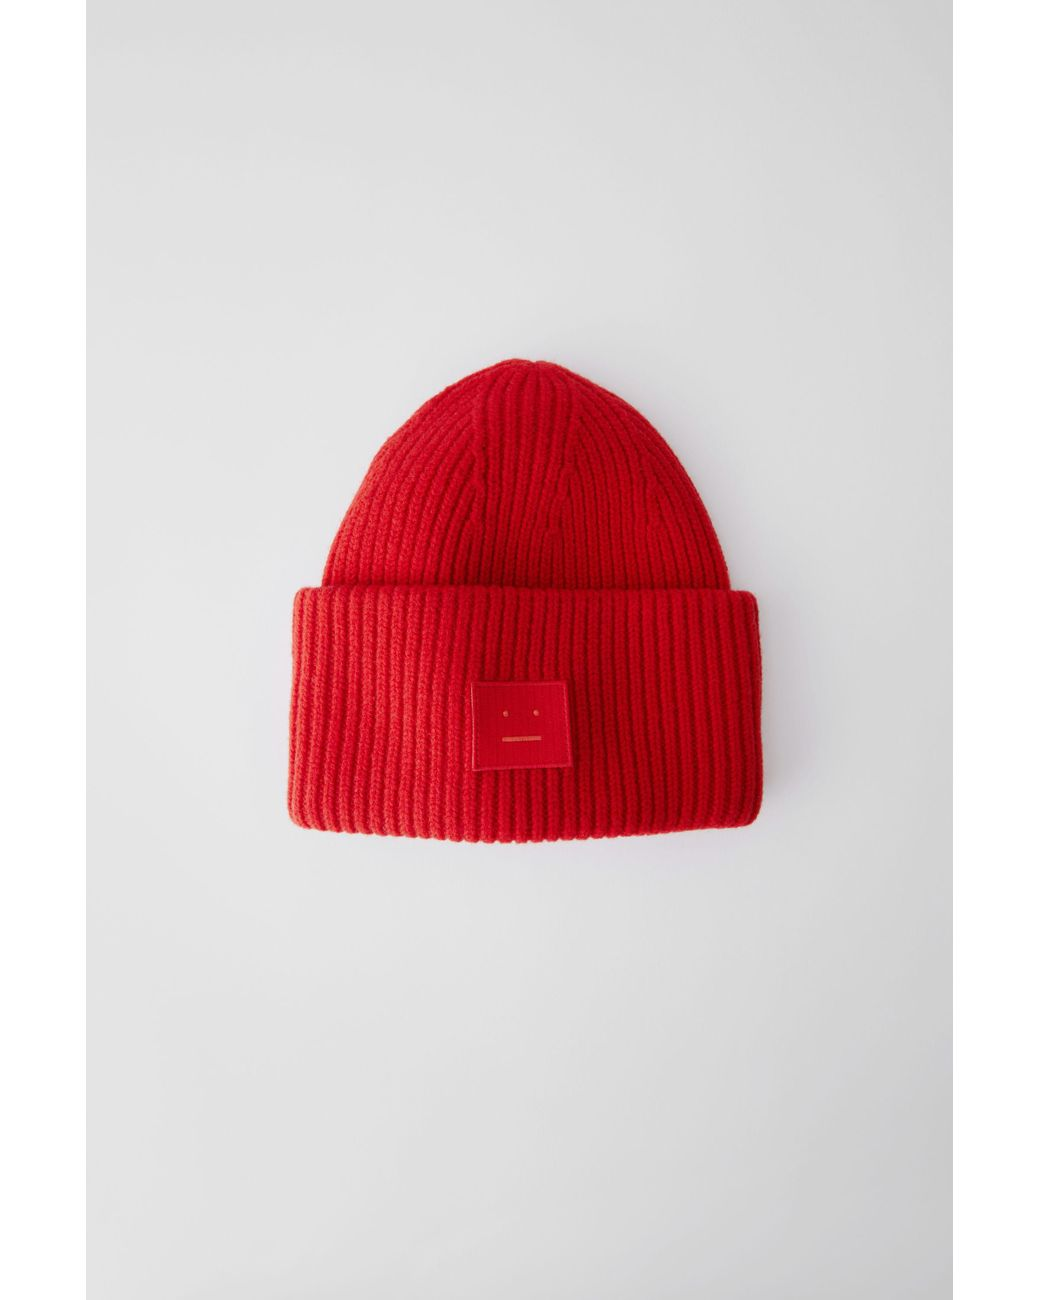 4d5422345c4 Acne Studios Pansy Face Tomato Red Ribbed Beanie Hat in Red for Men ...